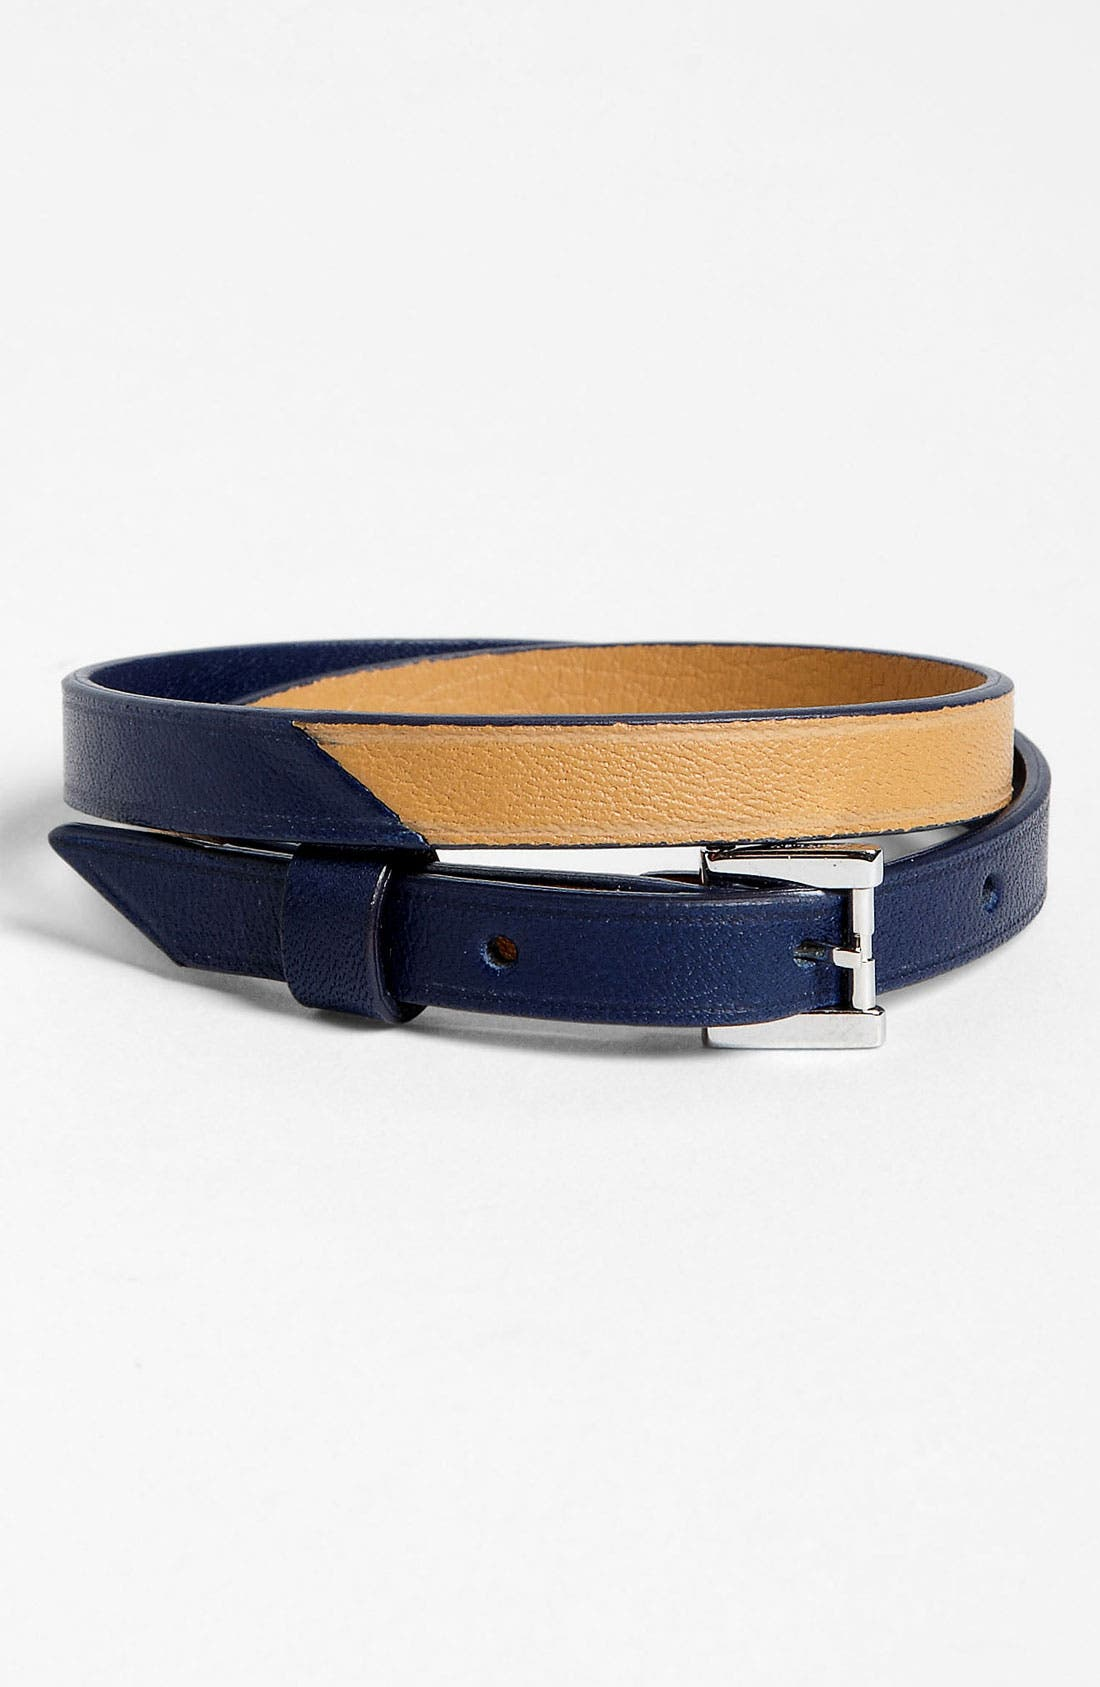 Alternate Image 1 Selected - WANT Les Essentiels de la Vie 'Vantaa' Leather Bracelet